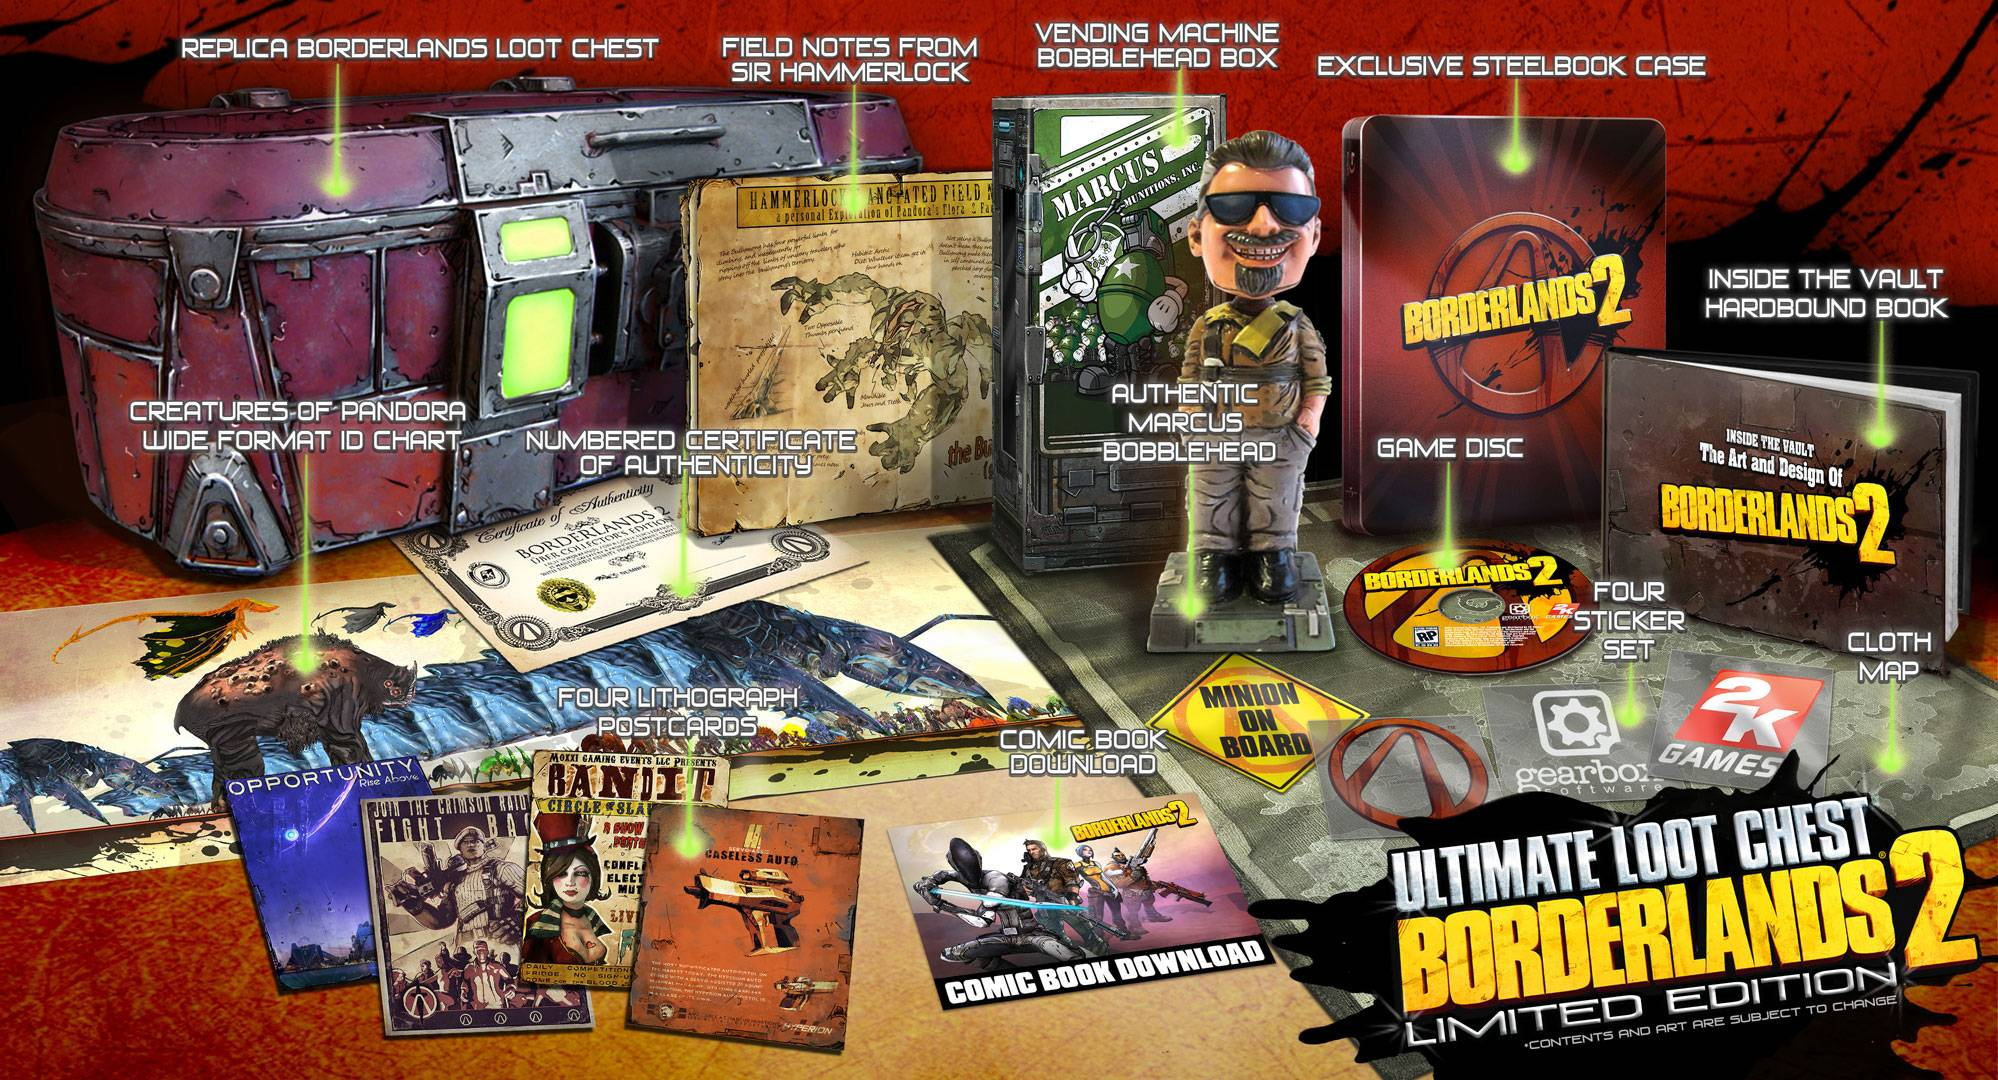 Borderlands 2 Ultimate Vault Hunter Edition Revealed!